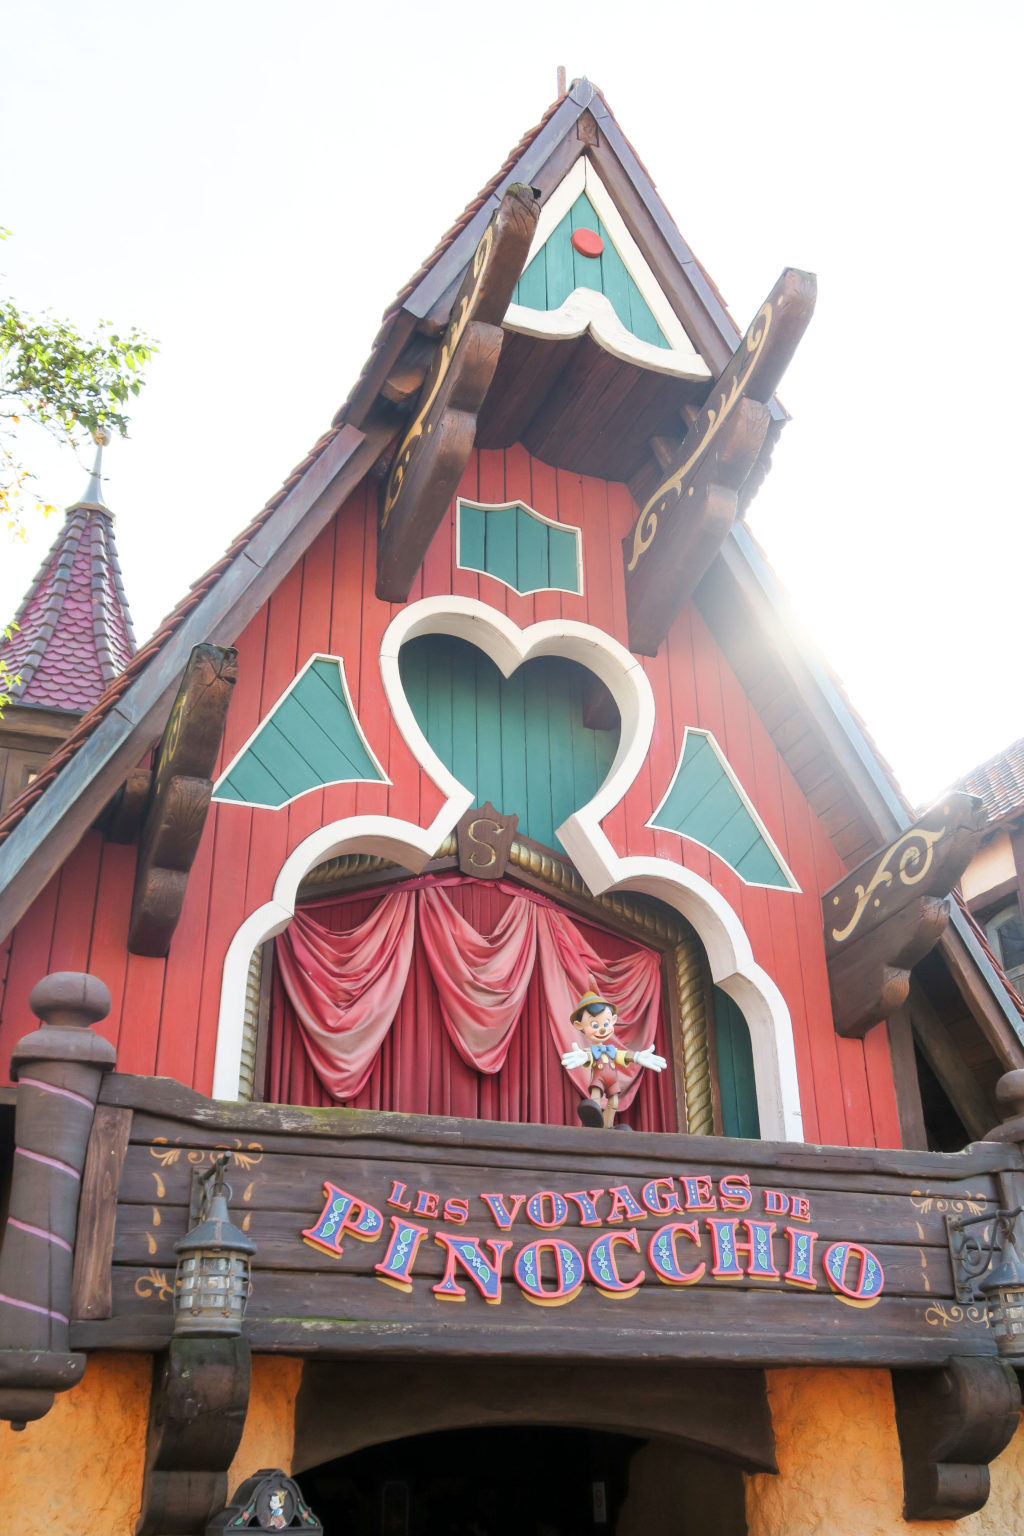 Disneyland Paris, Travel Diary & Blog by Rosie Andre (bad review, experience, rides, rollercoasters, castle, magic, magical, family holiday, scary, france, paris, europe, walt disney, studios, children, kids, summer, guide)